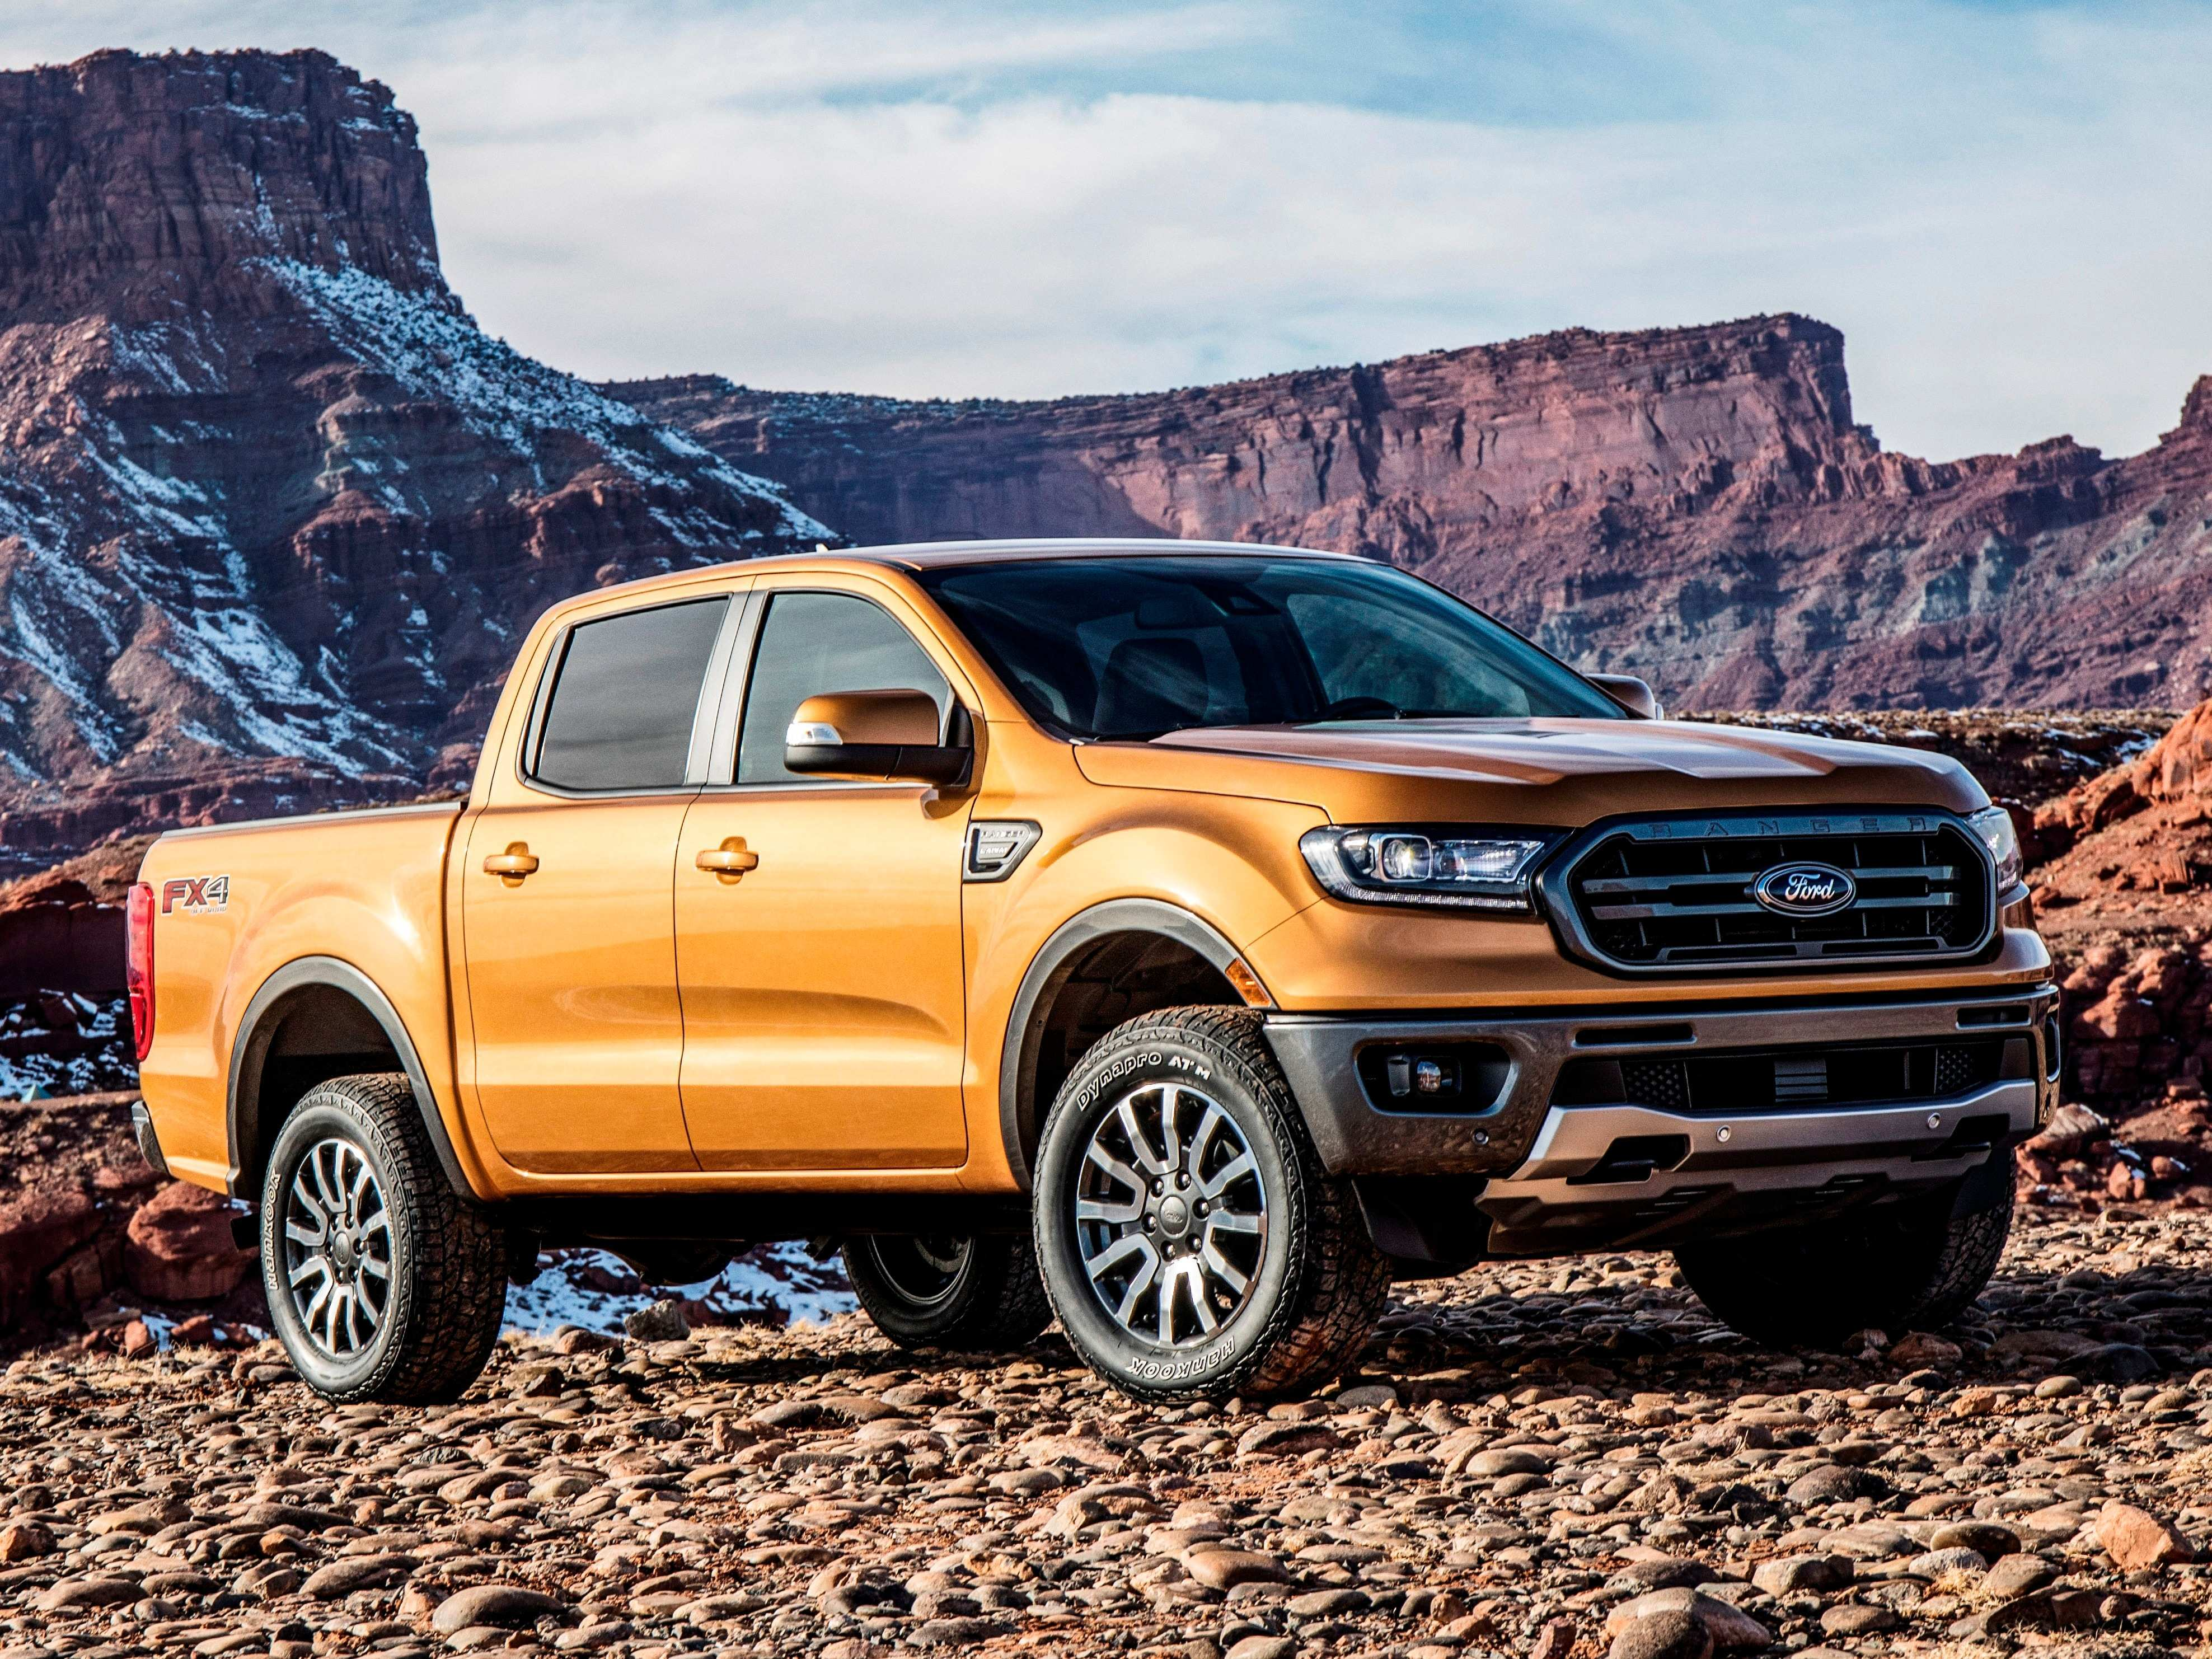 67 Great 2019 Ford Hd Performance and New Engine by 2019 Ford Hd